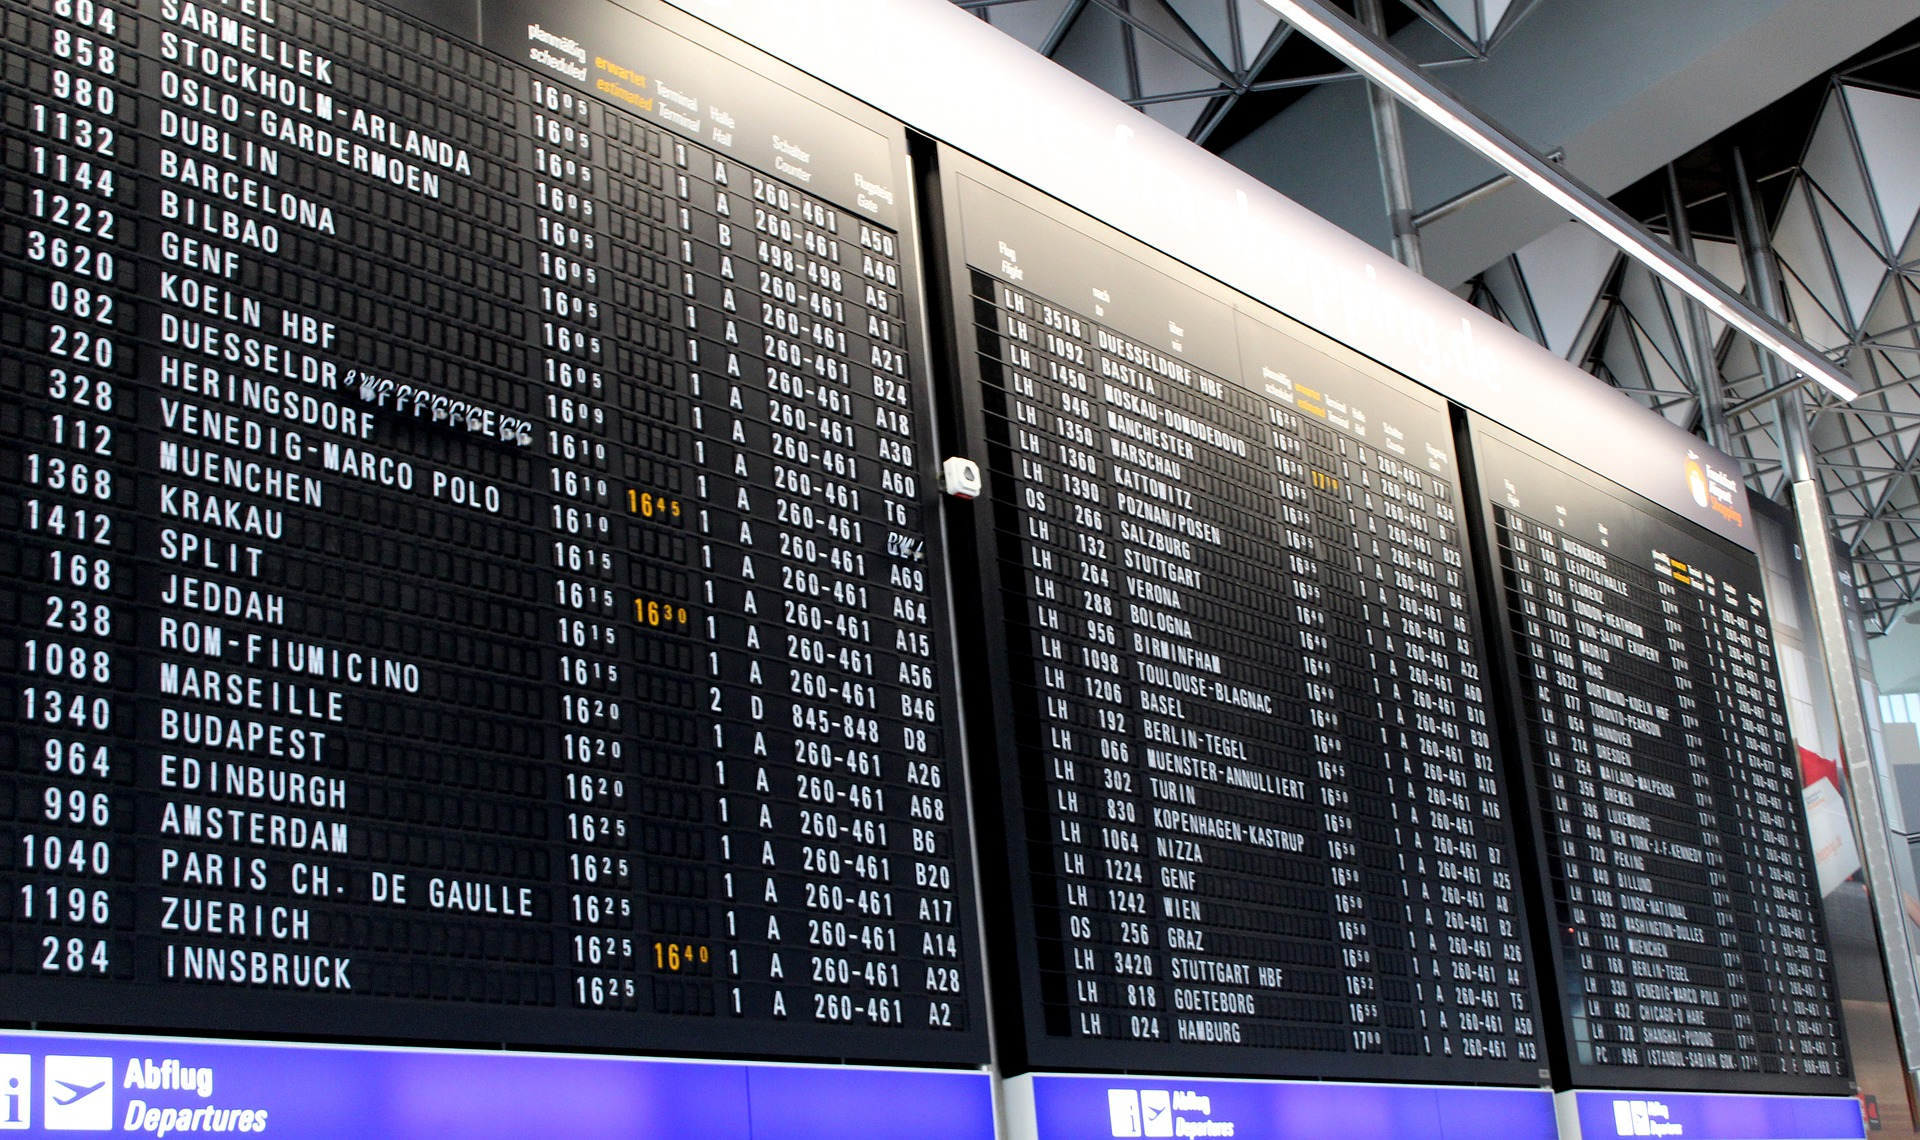 Airport departures board